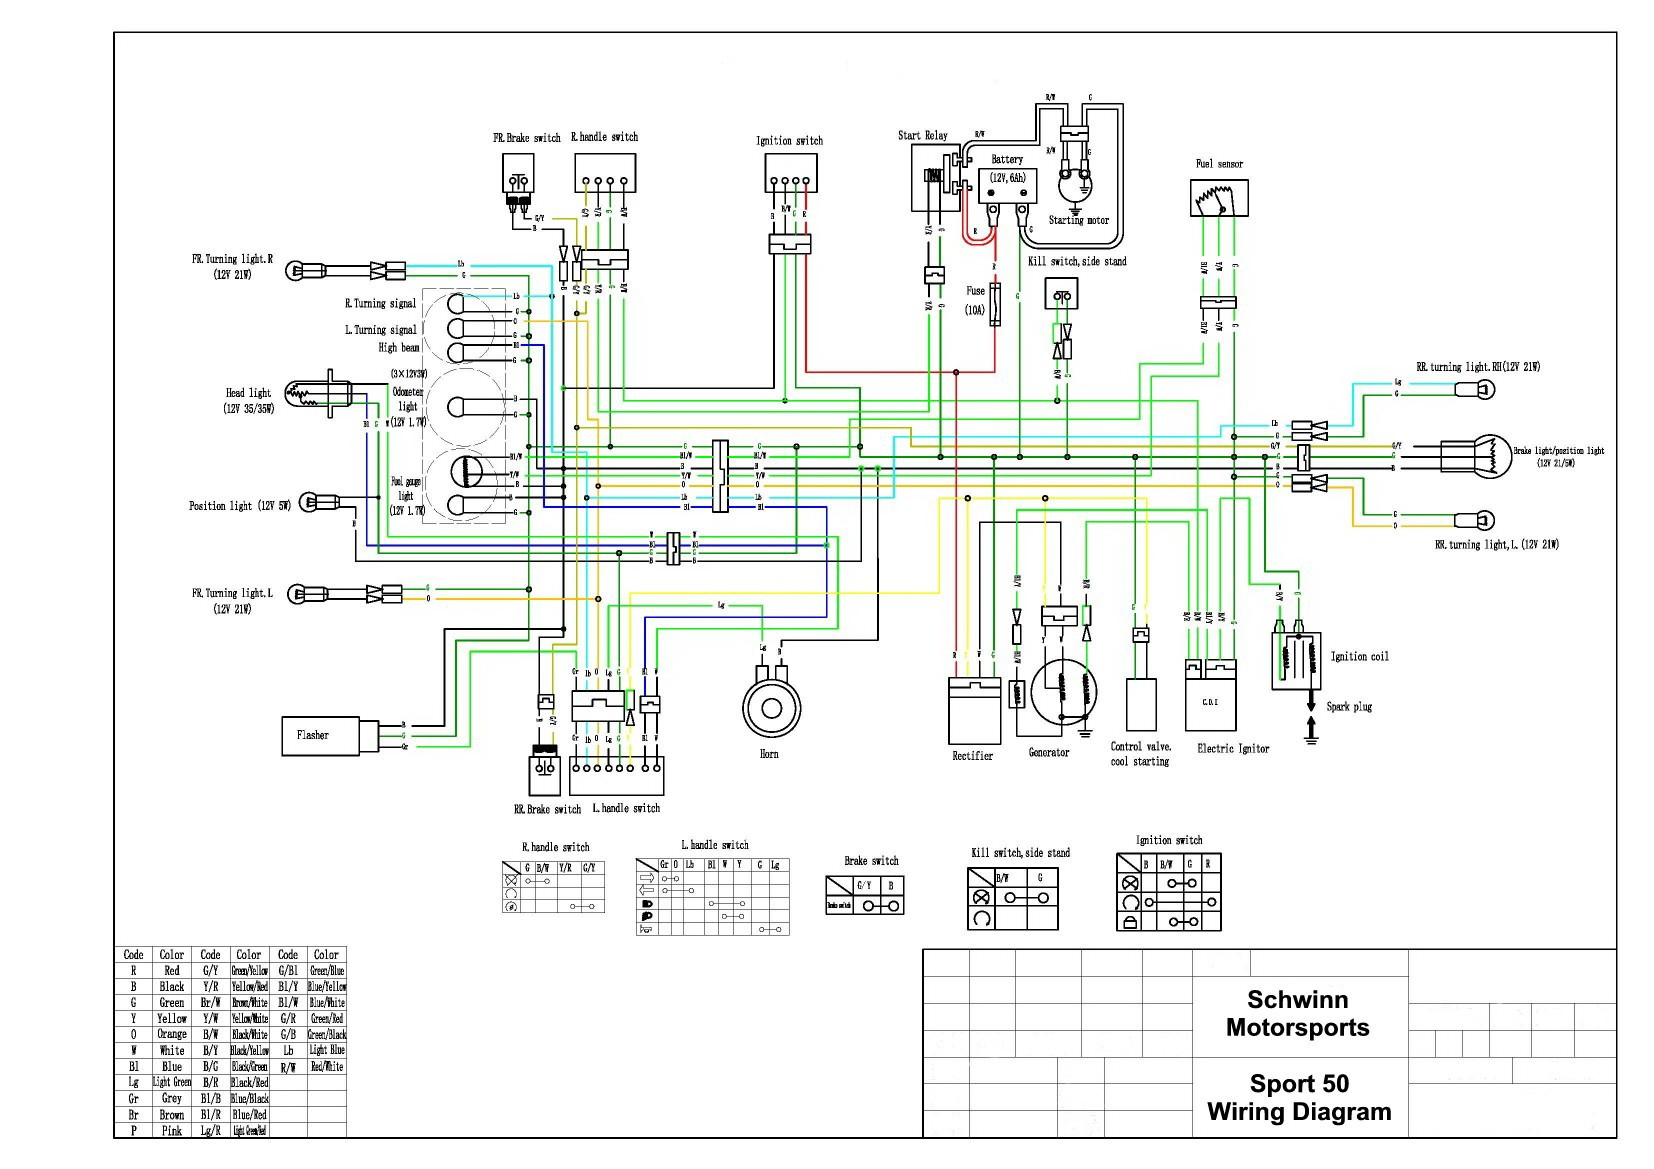 Scooter Wiring Schematic - Wiring Diagram Options on electric scooter battery, electric scooter controls, electric scooter dimensions, 36v electric scooter controller schematic, electric scooter turn signals, yamaha scooter carburetor schematic, electric scooters for adults, electric scooter 125cc, electric three wheel street scooter, electric mobility rascal 230 electrical schematic, electric e scooter wiring diagram, rascal scooter schematic, electric bike controller wiring diagram, electric scooter fuses, electric scooter radio, electric scooter performance, electric mobility scooter wiring diagram, electric golf cart wiring schematic,